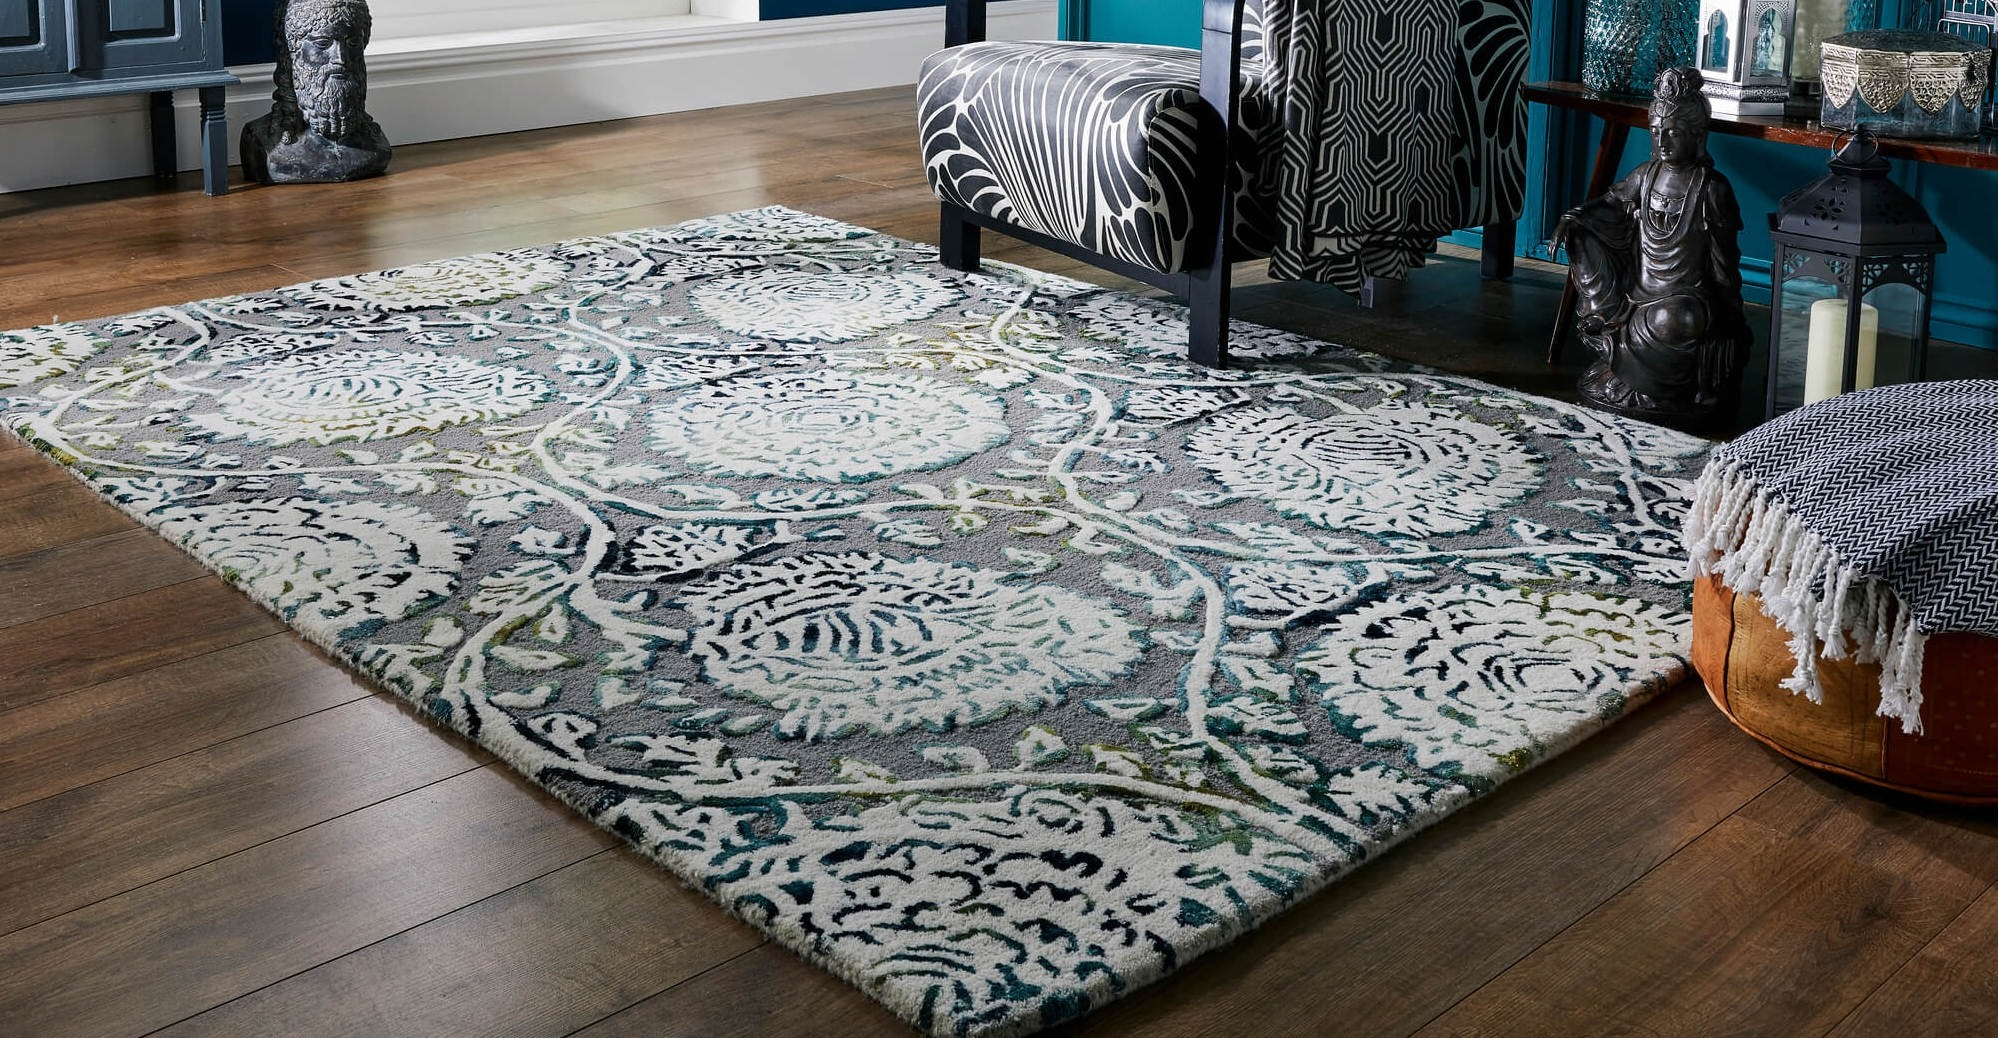 Soho Luxmi Rugs by Flair Rugs